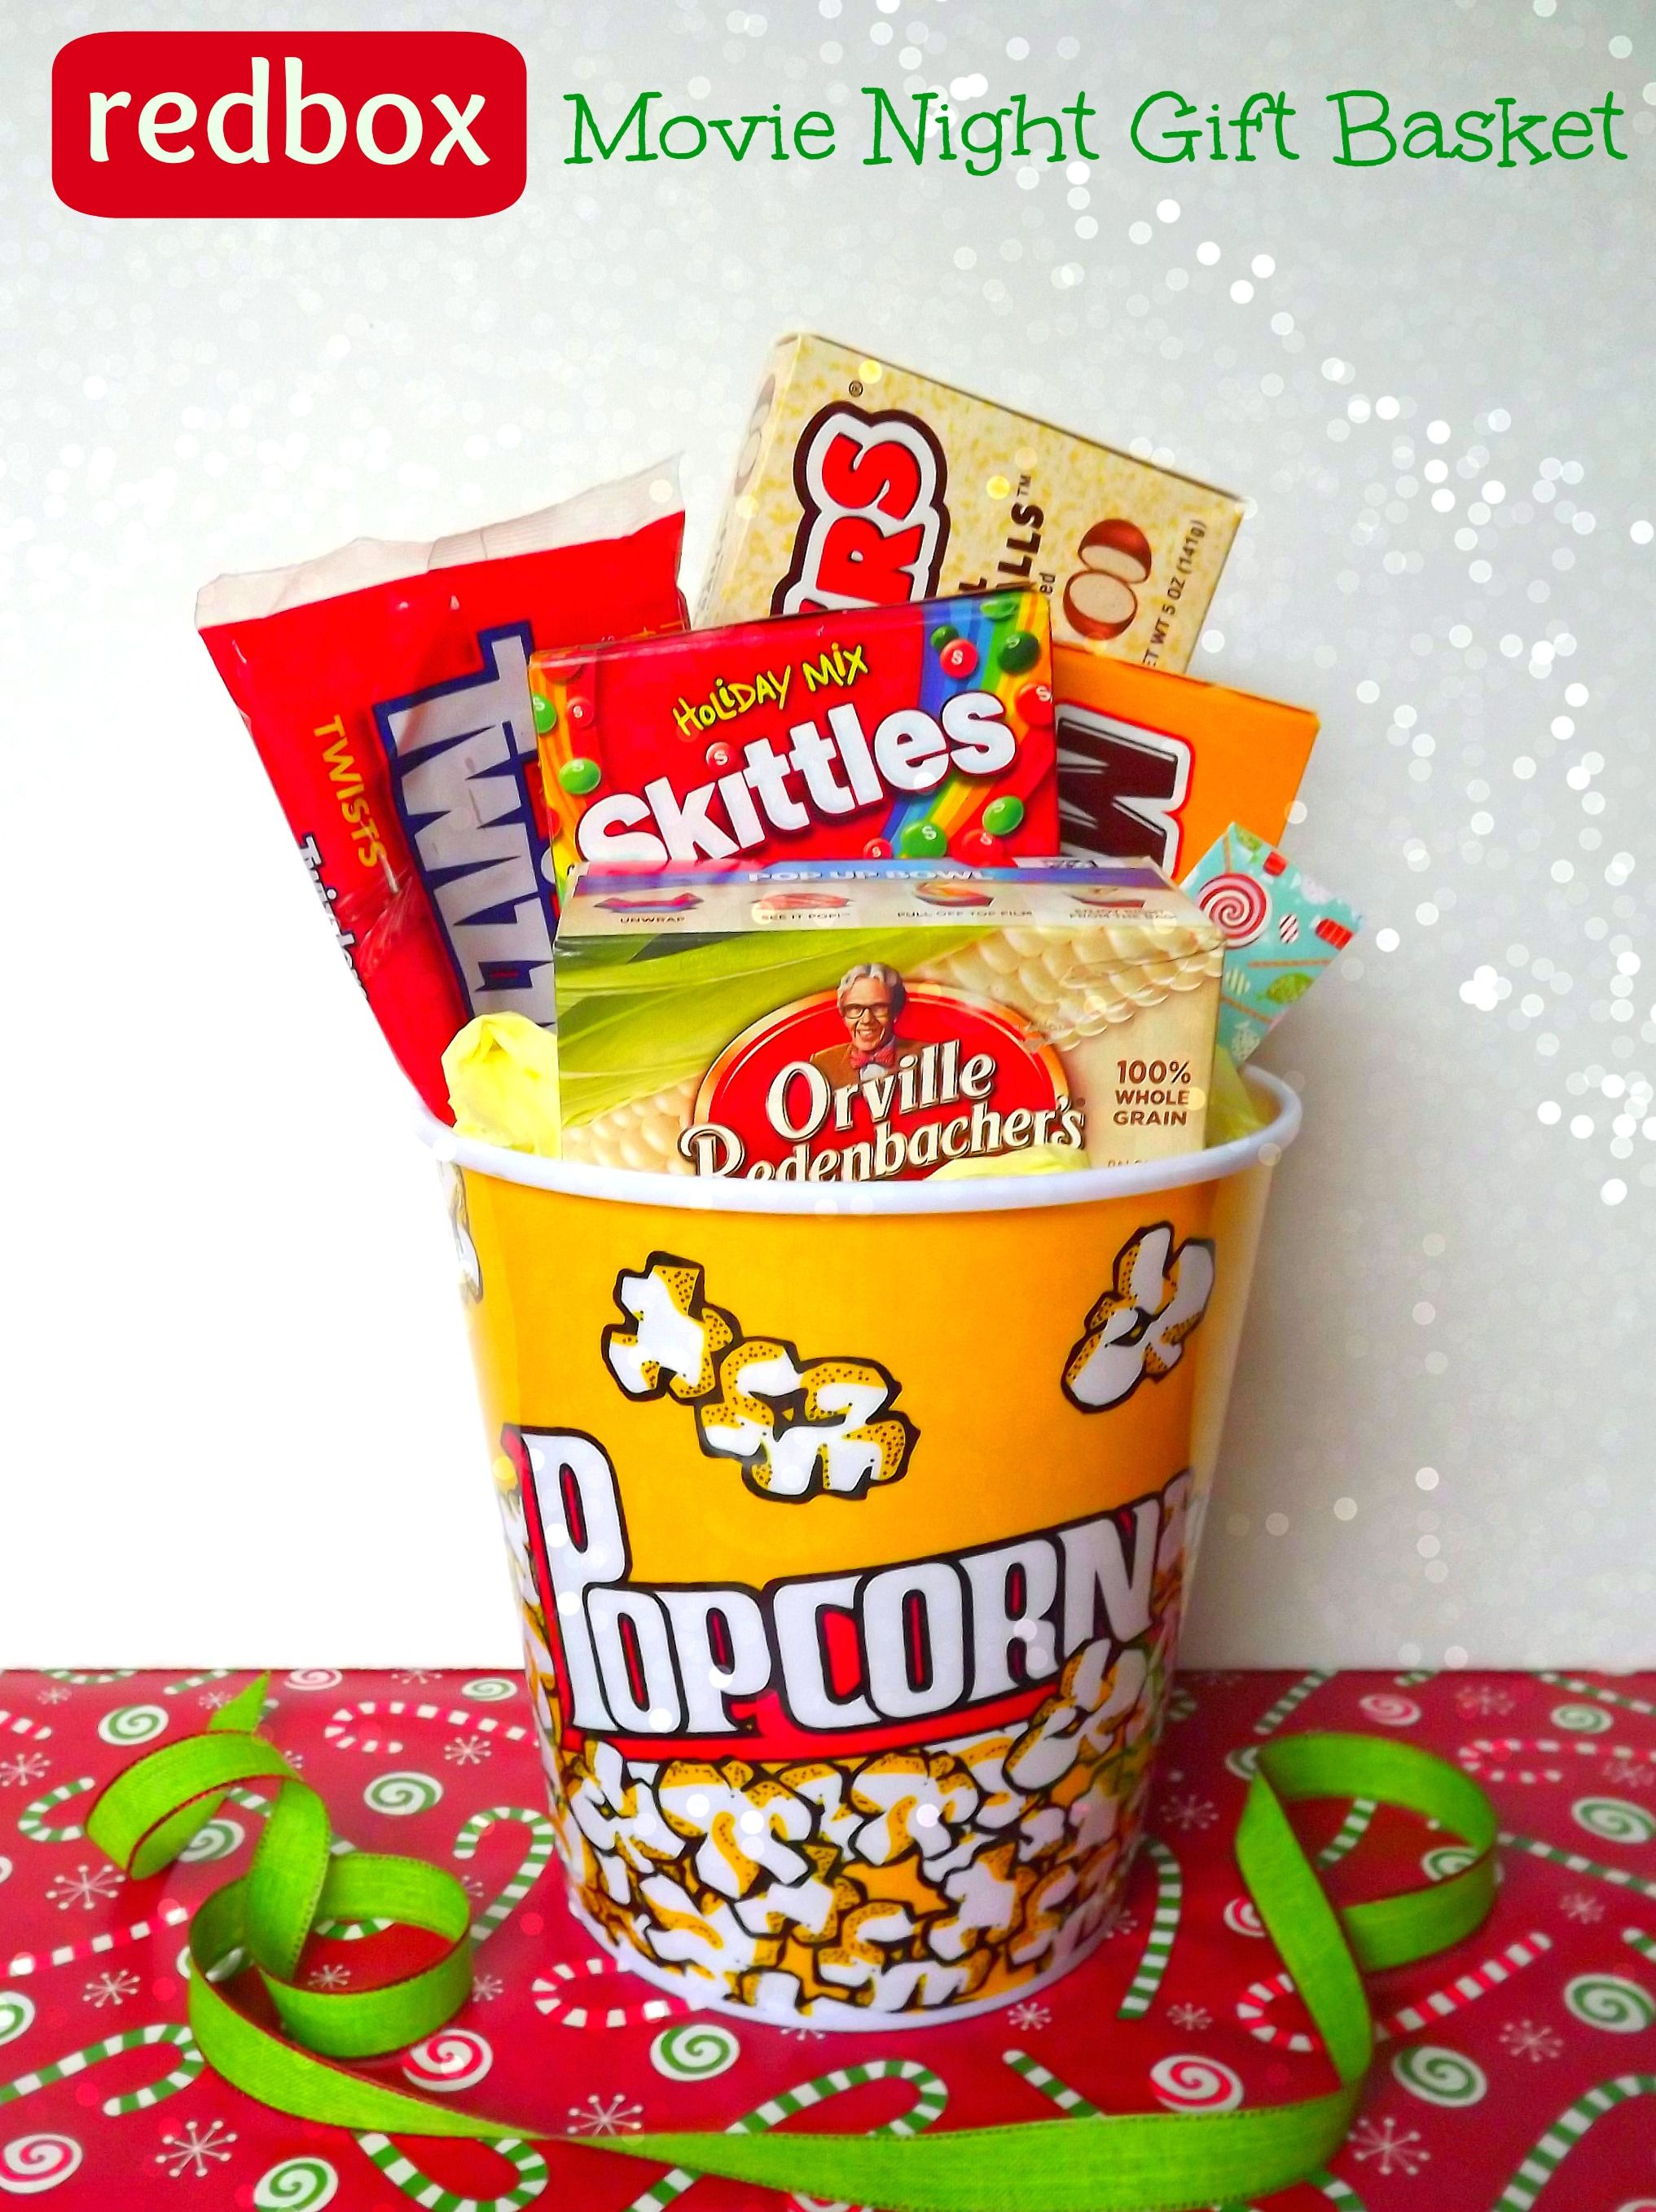 diy movie night redbox gift basket teacher gift idea | christmas